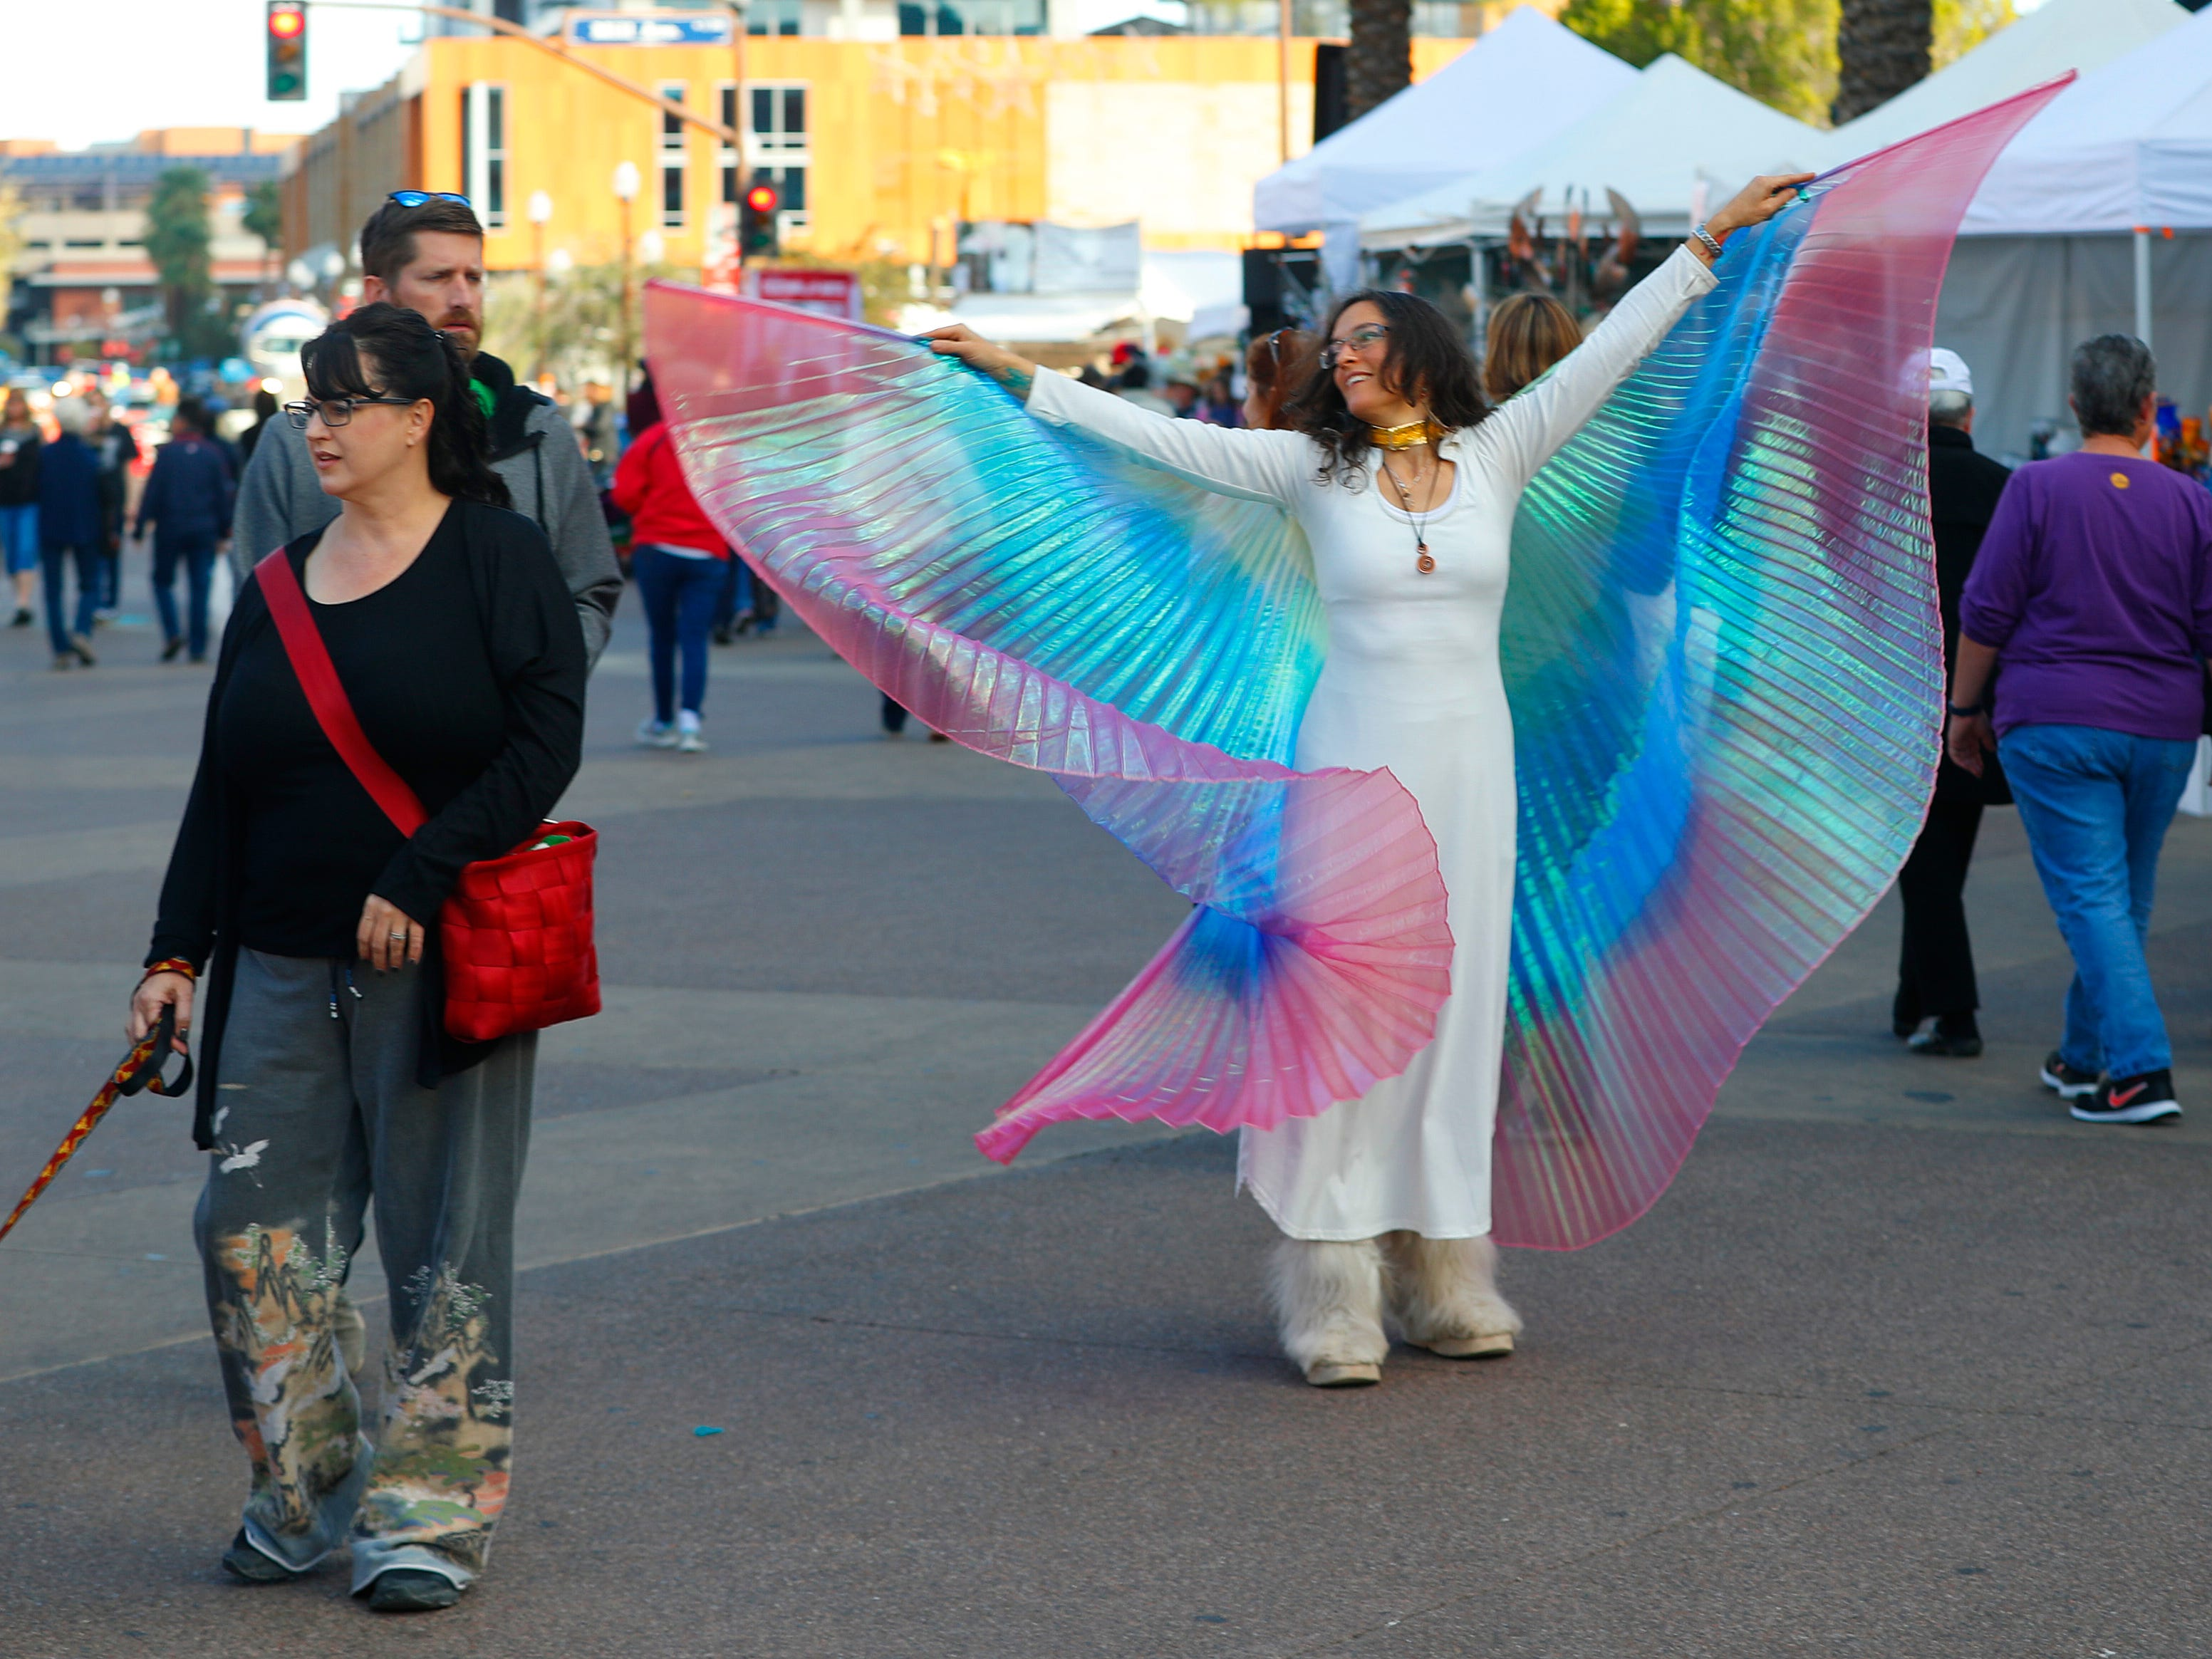 Rachel Mari Kimber dances with her wings at the Tempe Festival of the Arts on Mill Avenue on Friday, November 30, 2018.